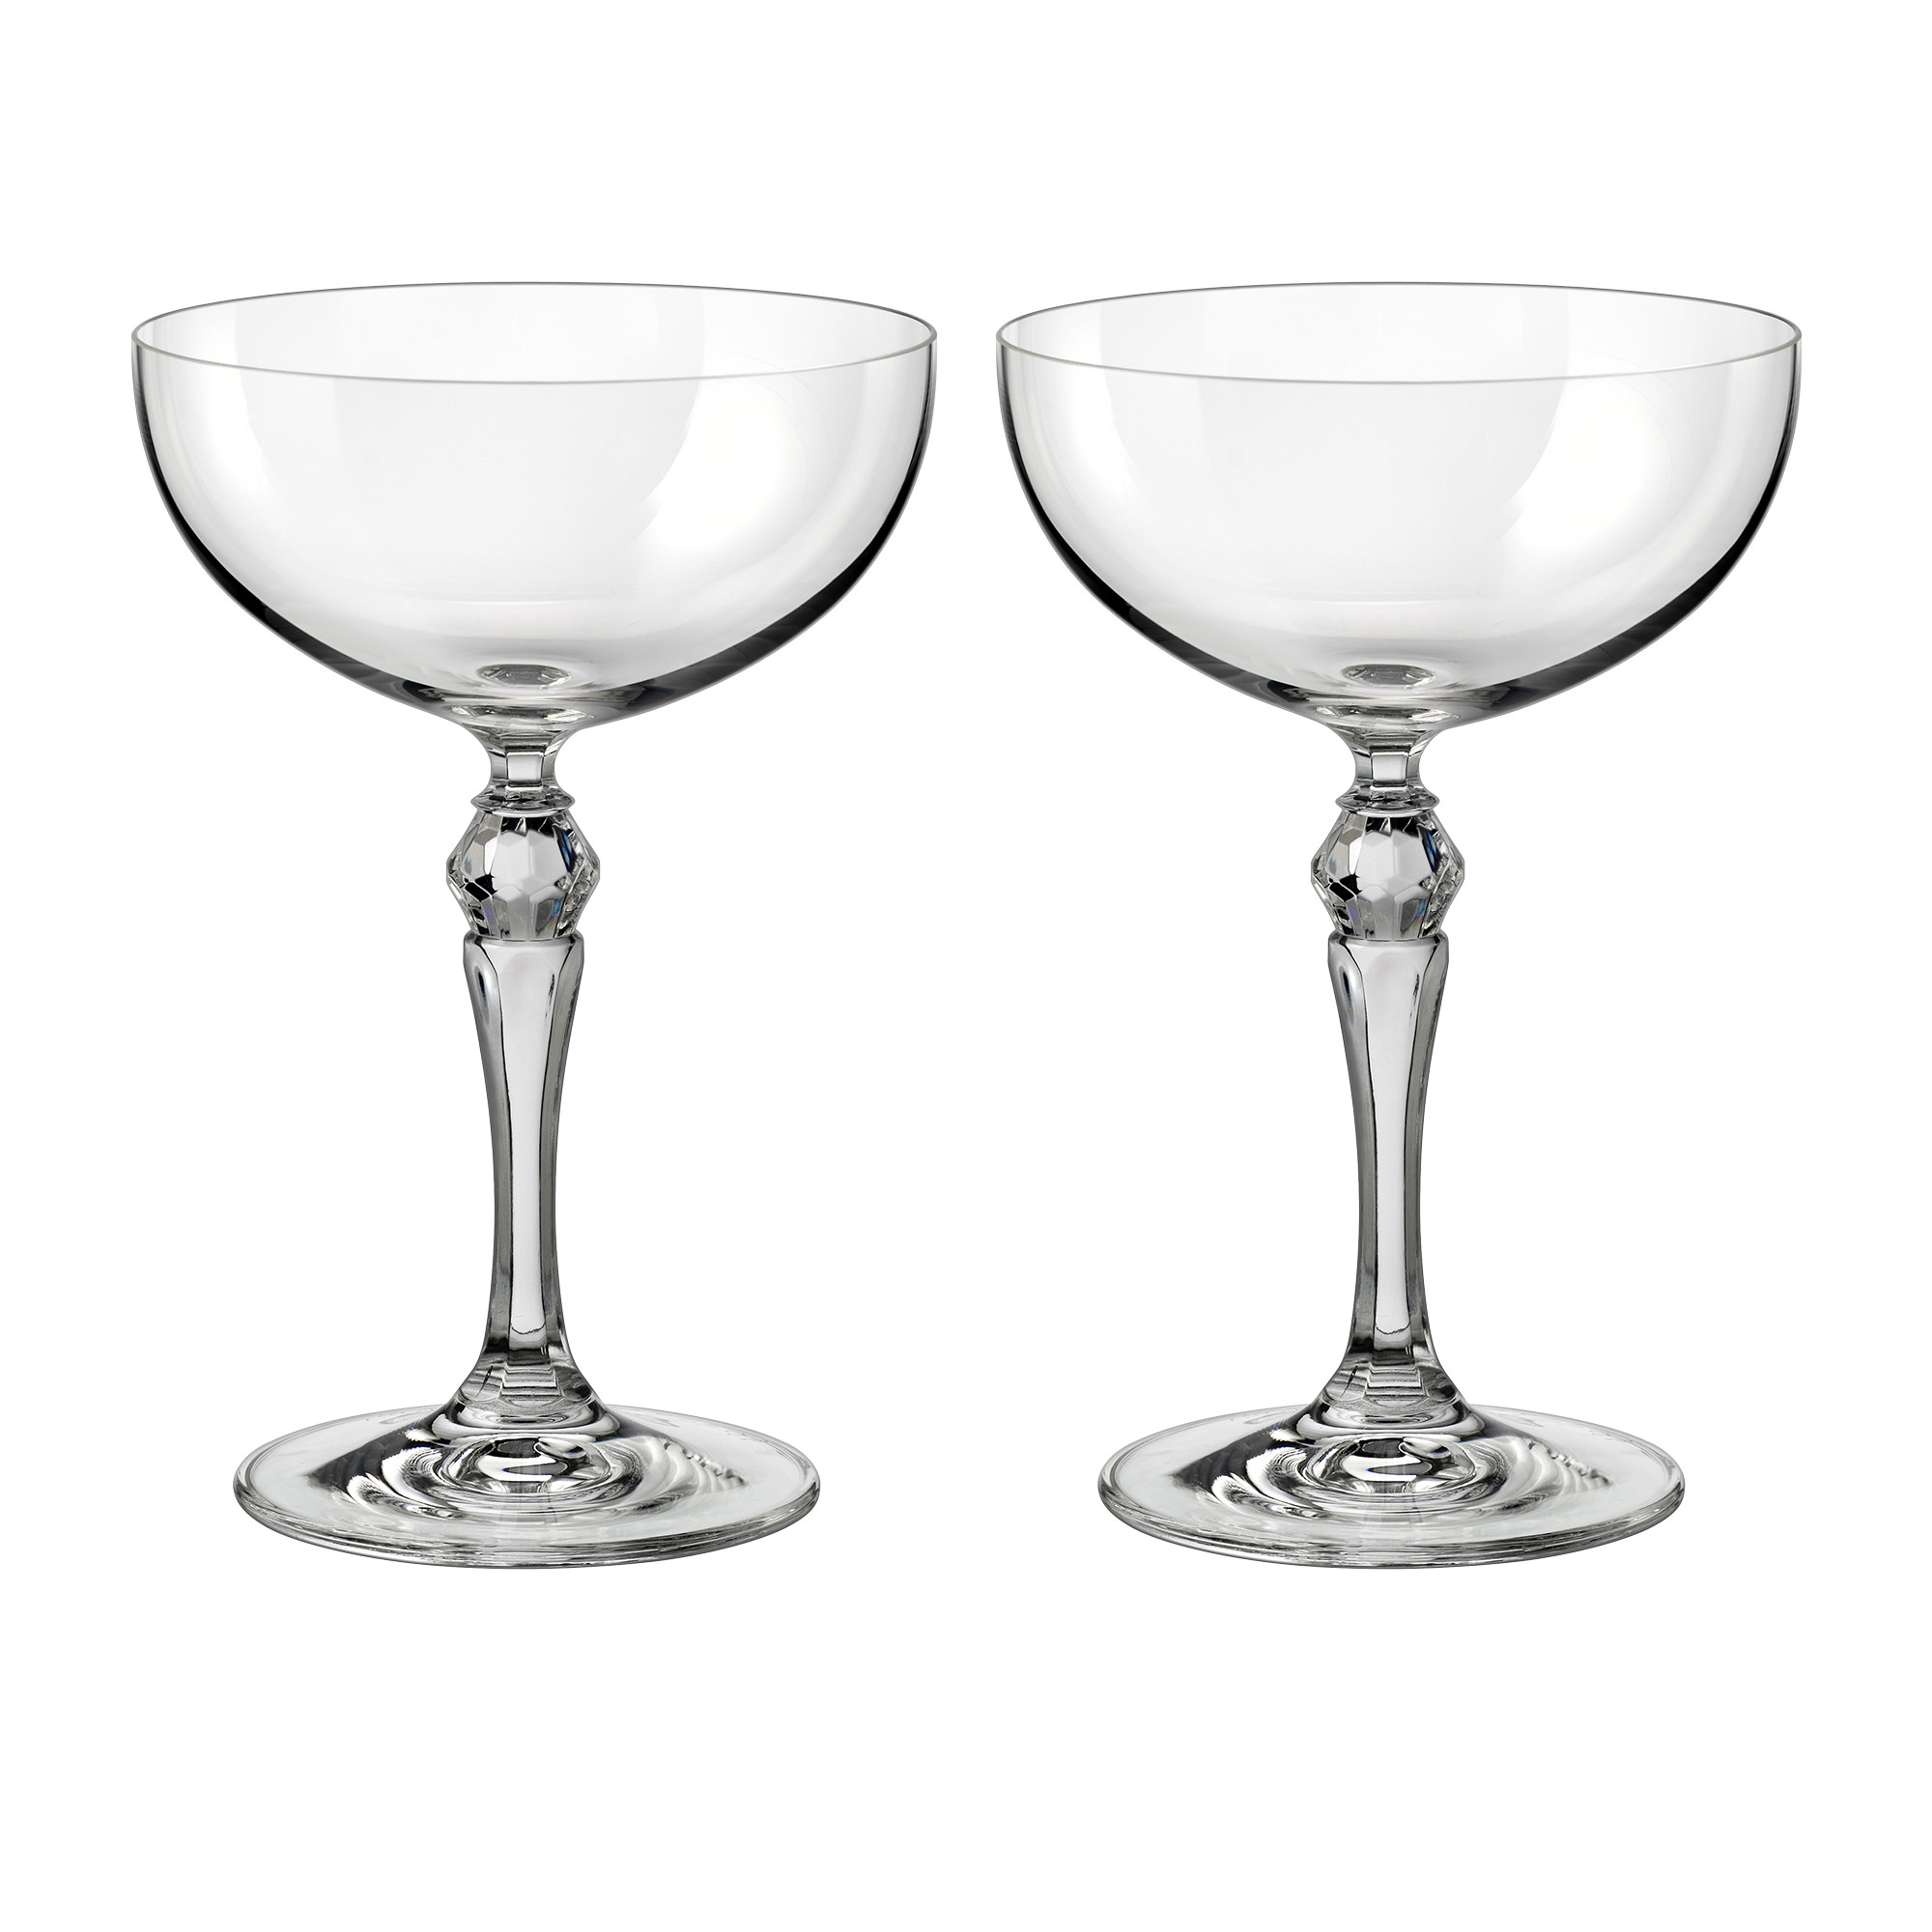 Noritake IVV 1815 2pc Champagne Cocktail Cup Set 170ml